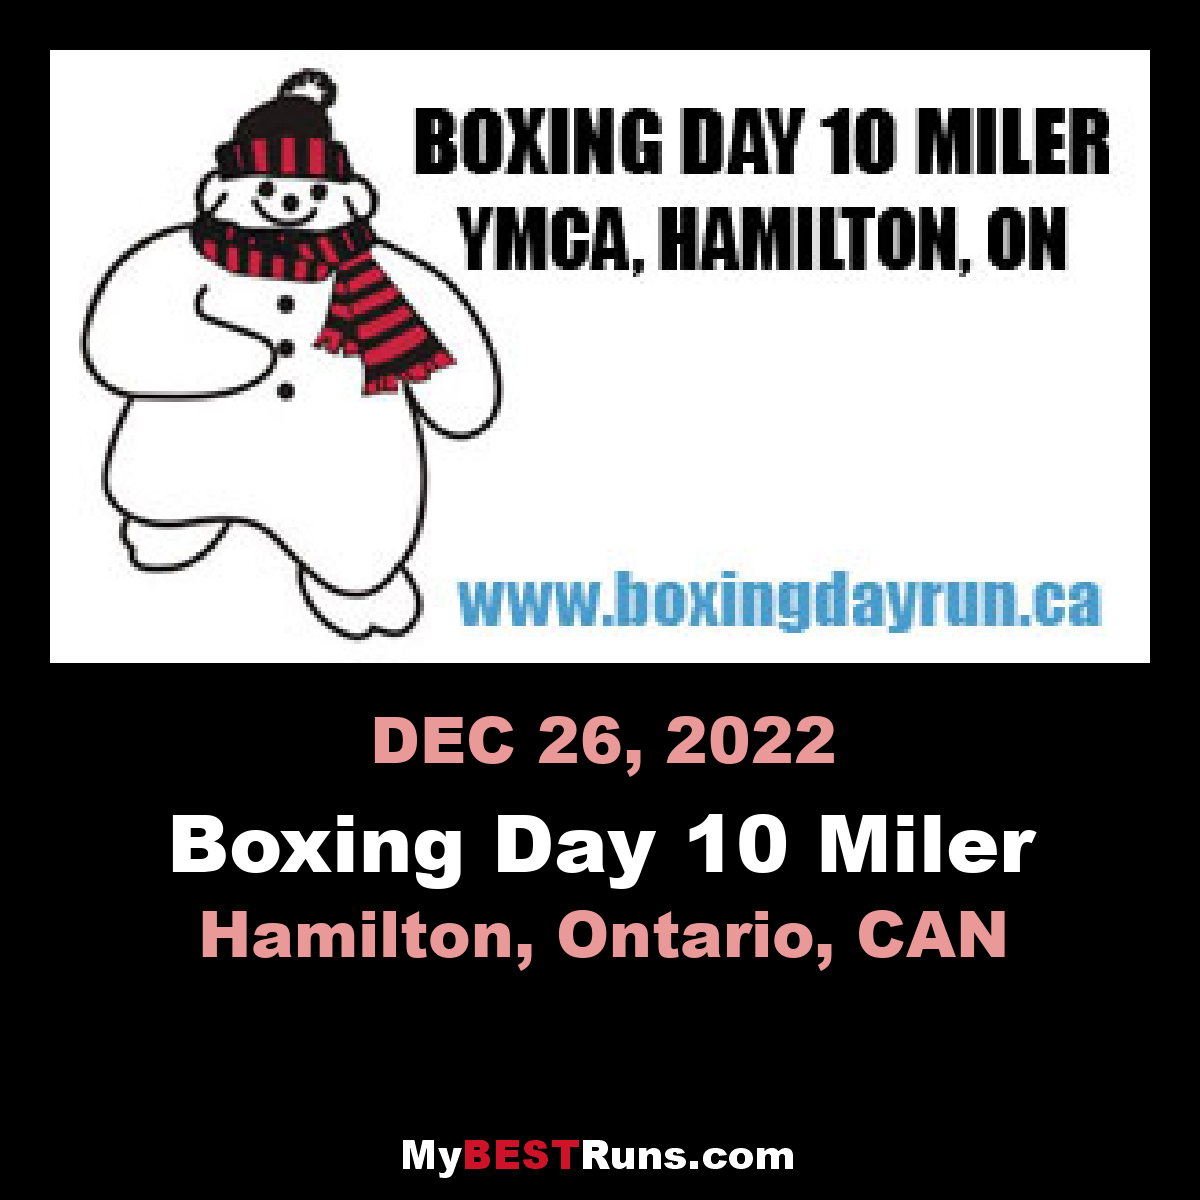 Boxing Day 10 Miler